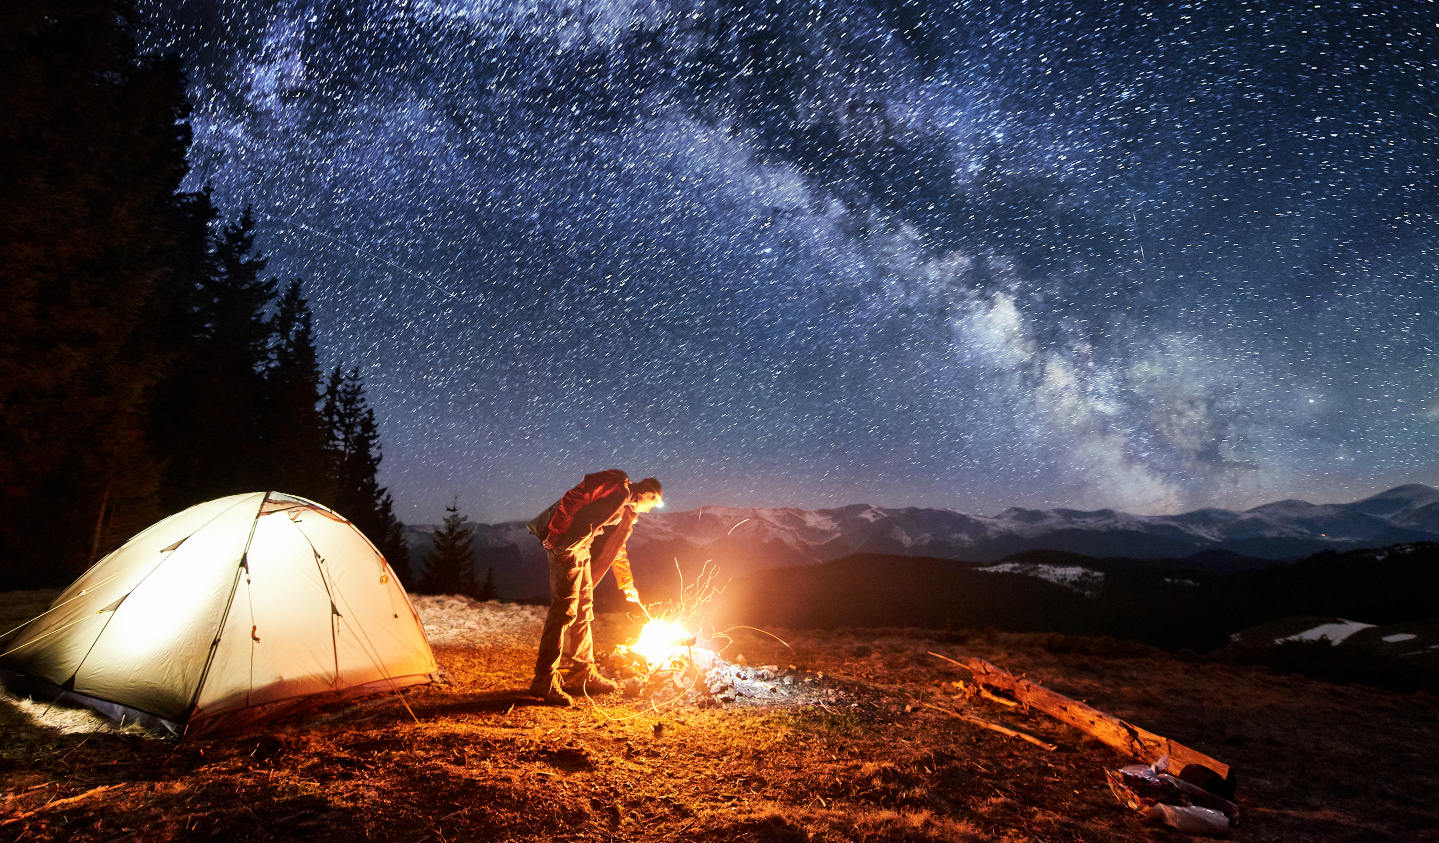 fire-for-camping Are You a First-time Camper? These Tips Will Help You Stay Safe